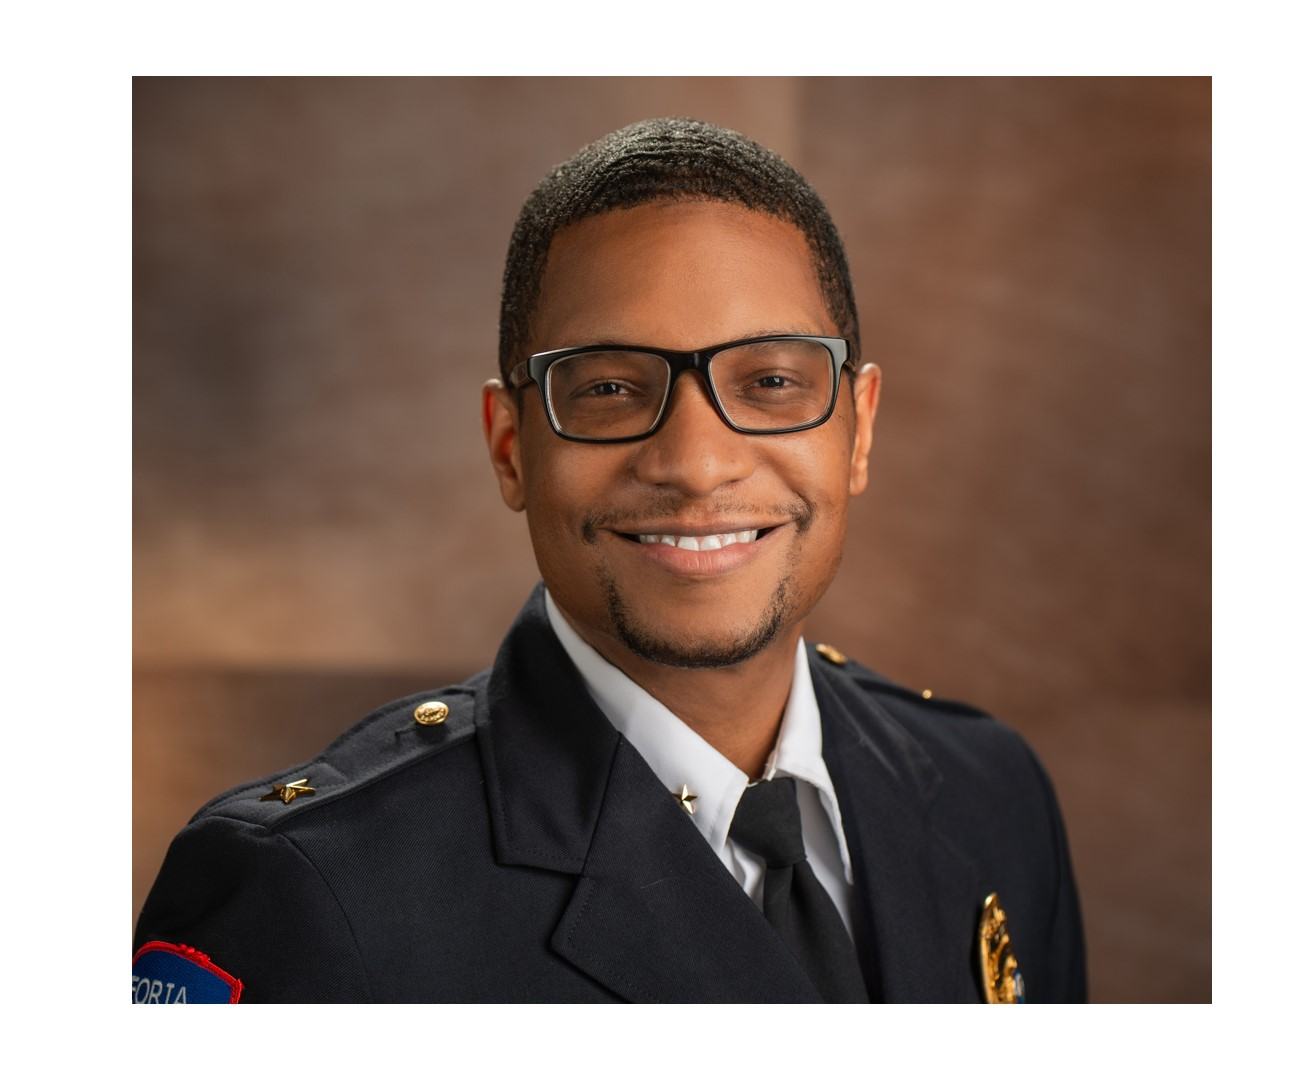 Spotlight on Campus Safety Director of the Year Finalist Demario Boone